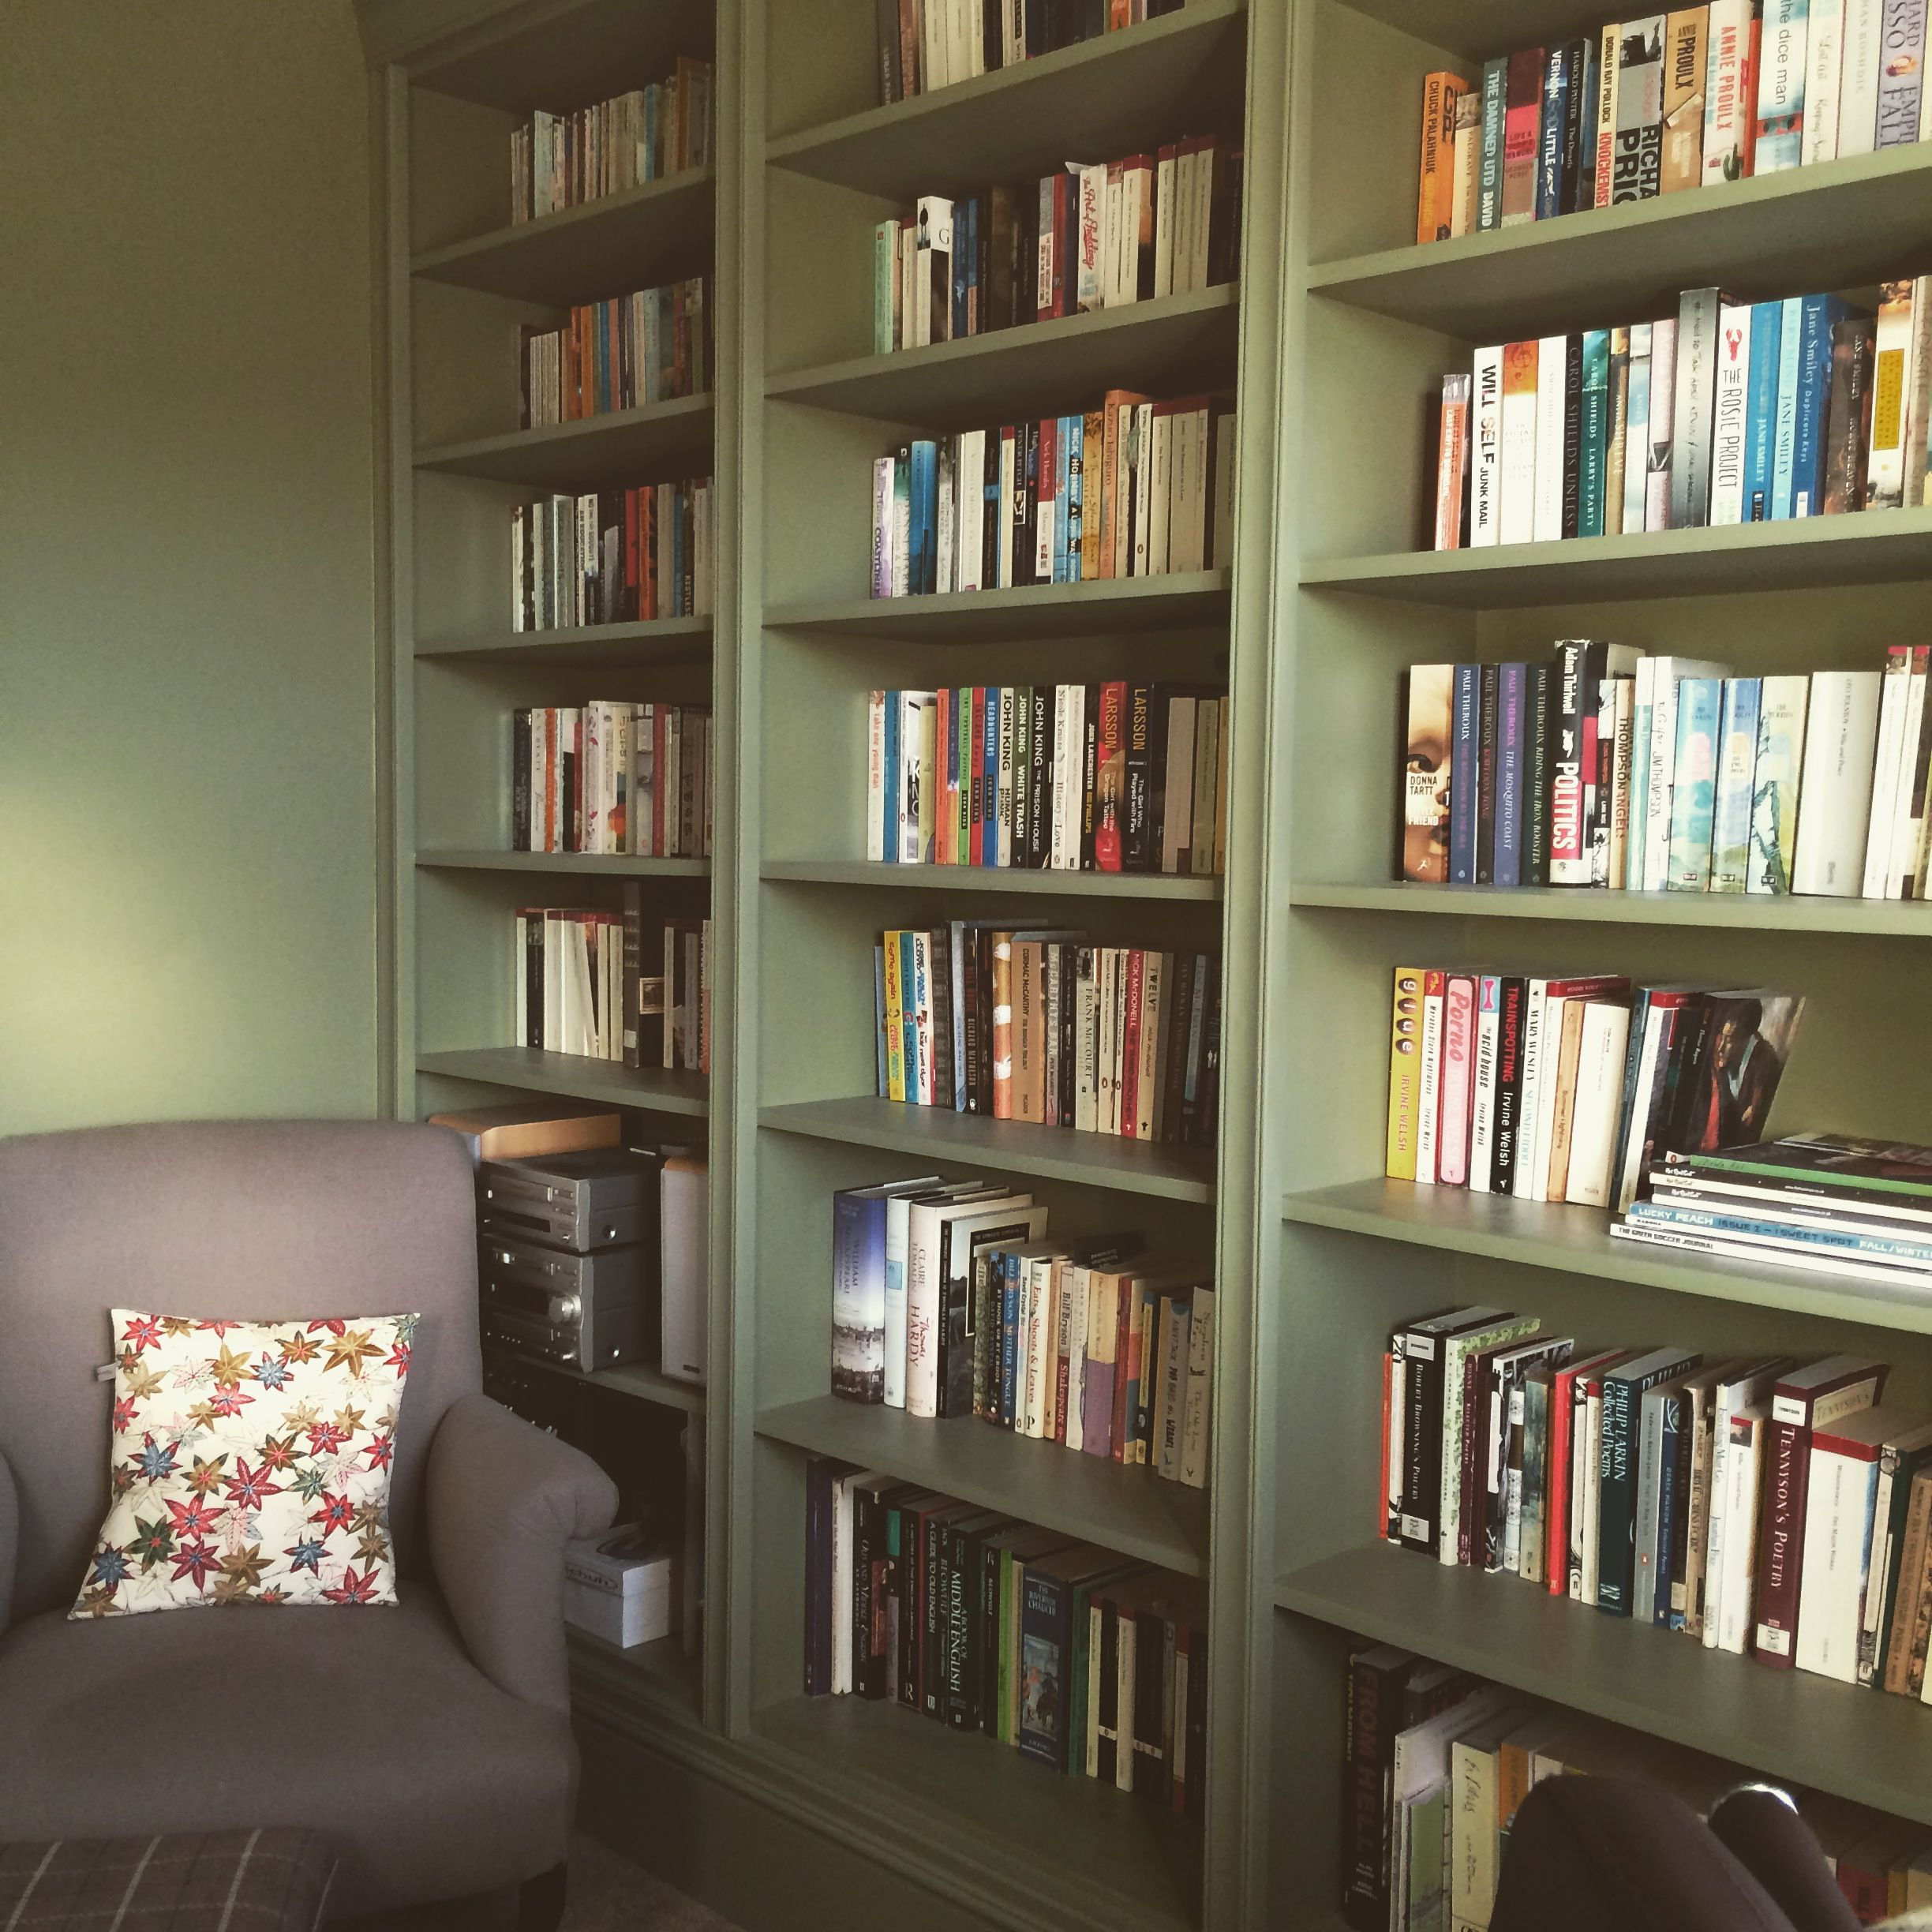 Miraculous Bookshelves In Home Office Library Love Floor To Ceiling Download Free Architecture Designs Embacsunscenecom